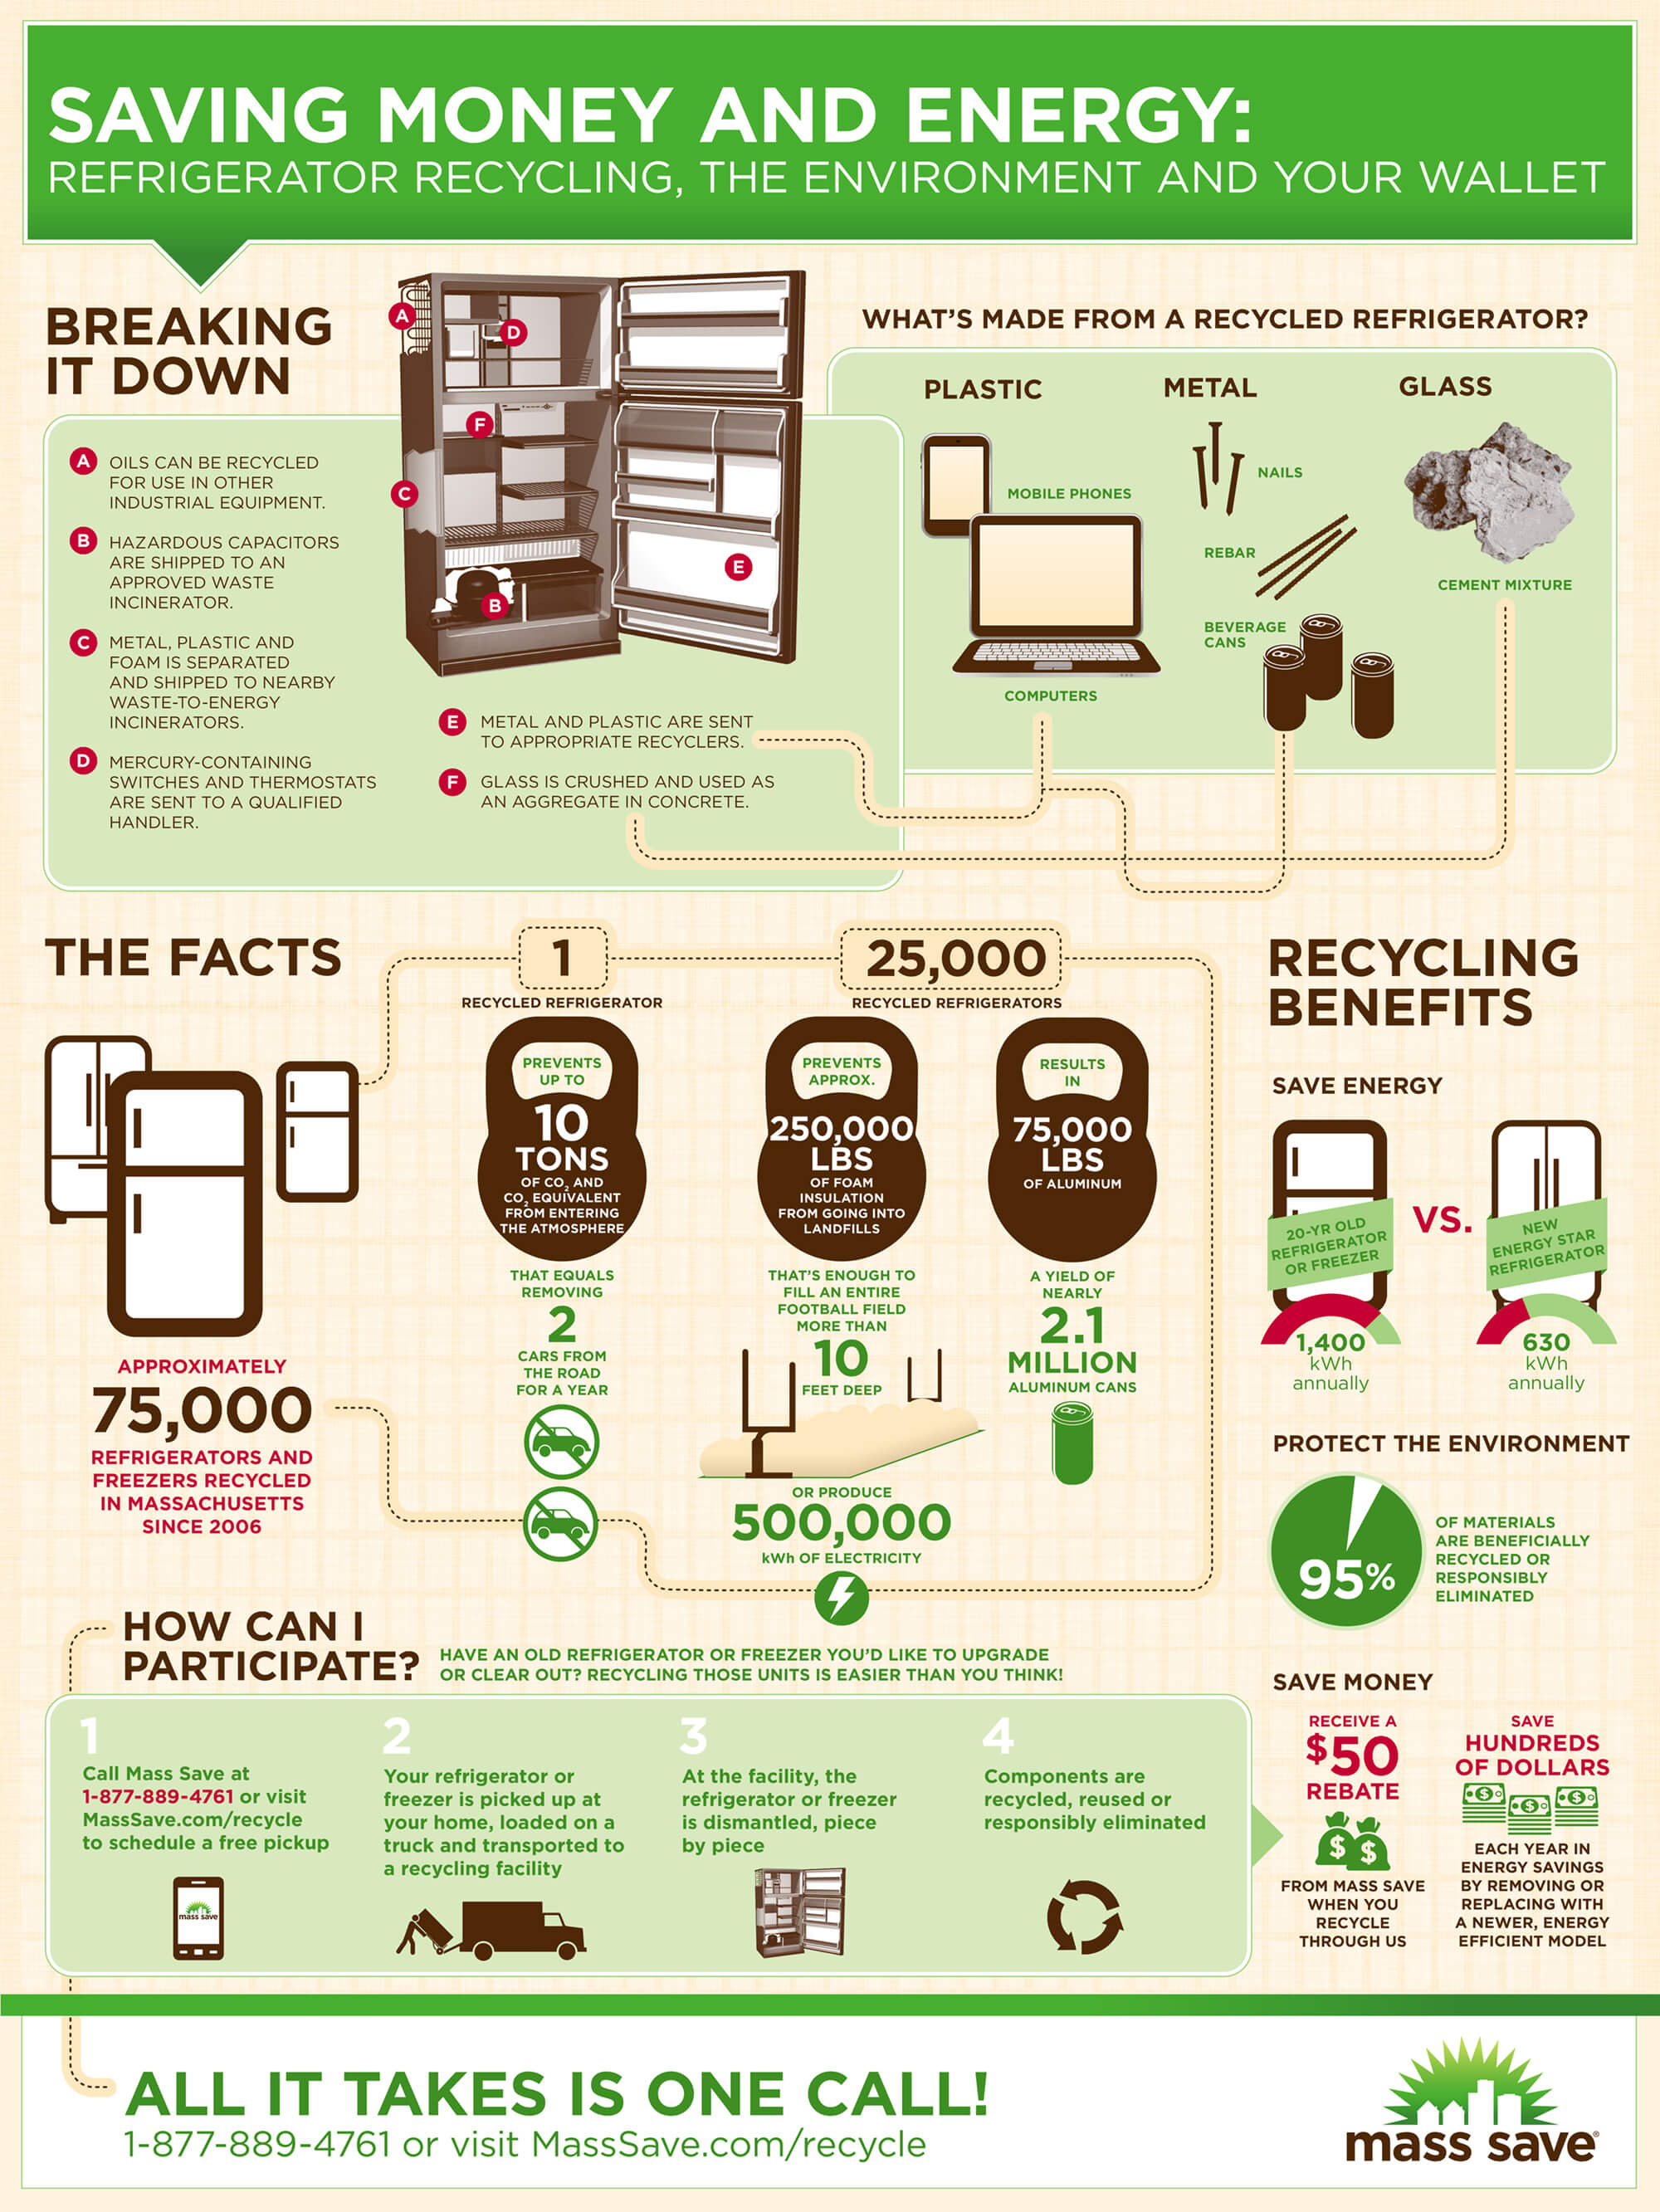 Refrigerator and Freezer Recycling